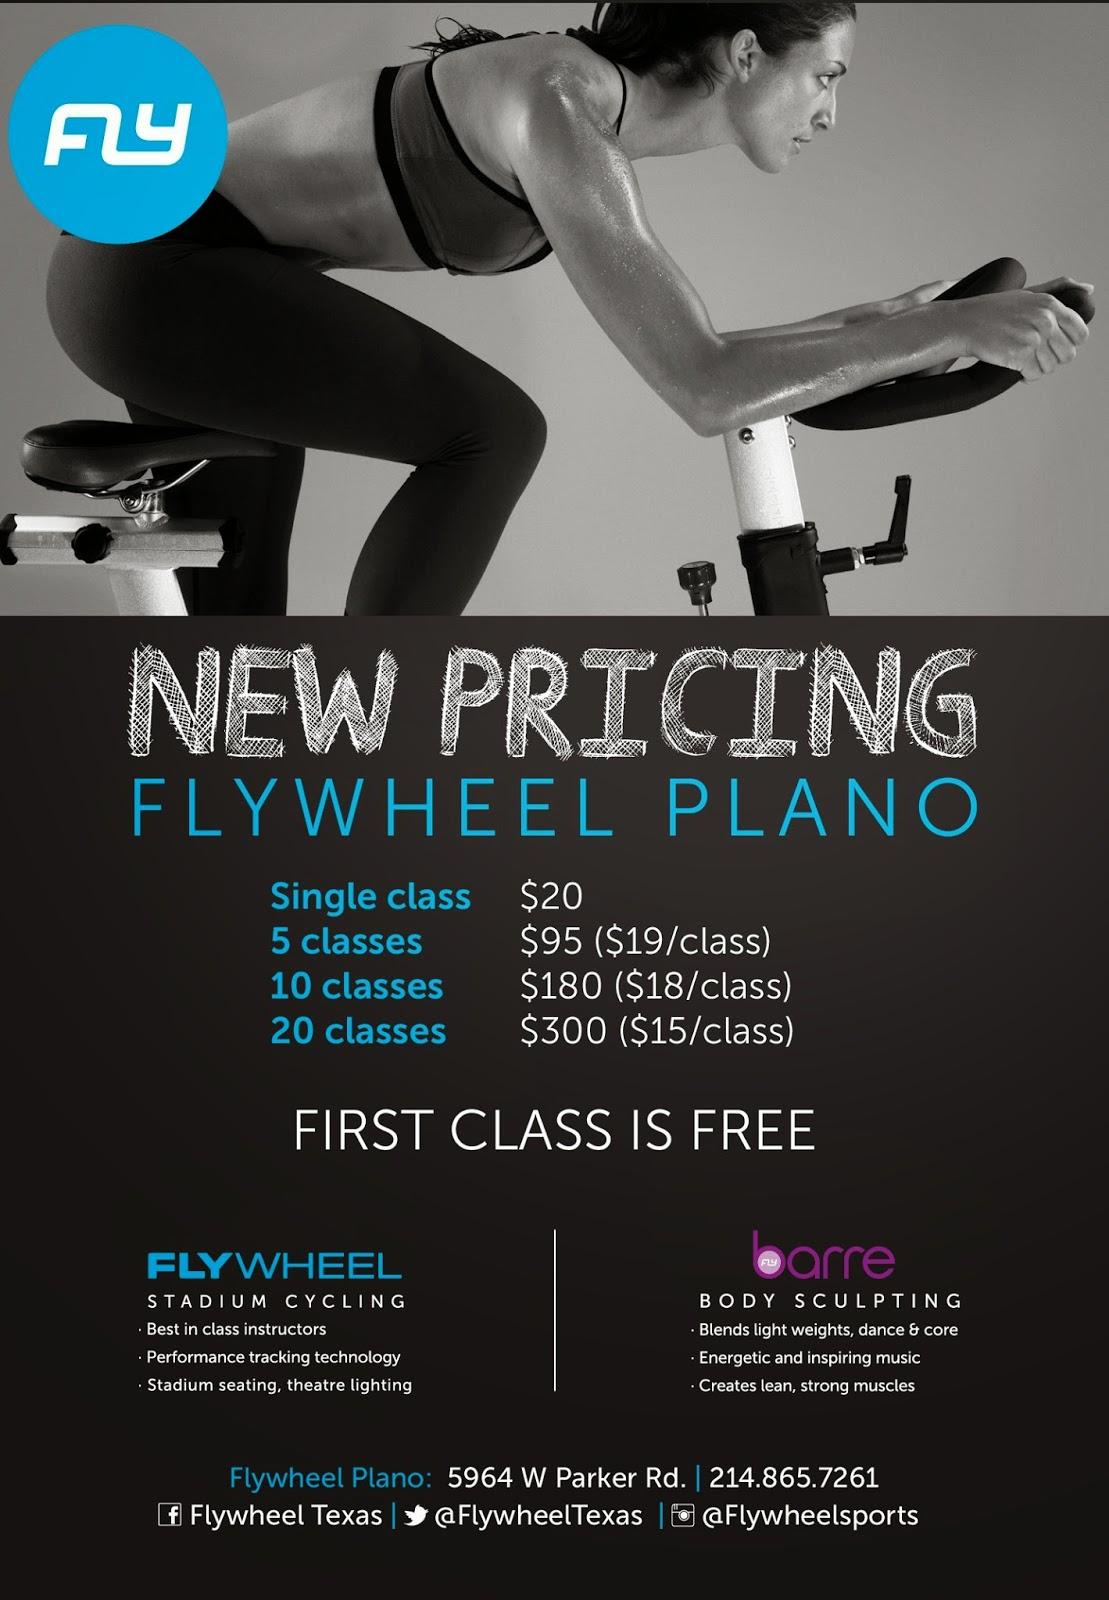 FlyWheel Plano Pricing Schedule